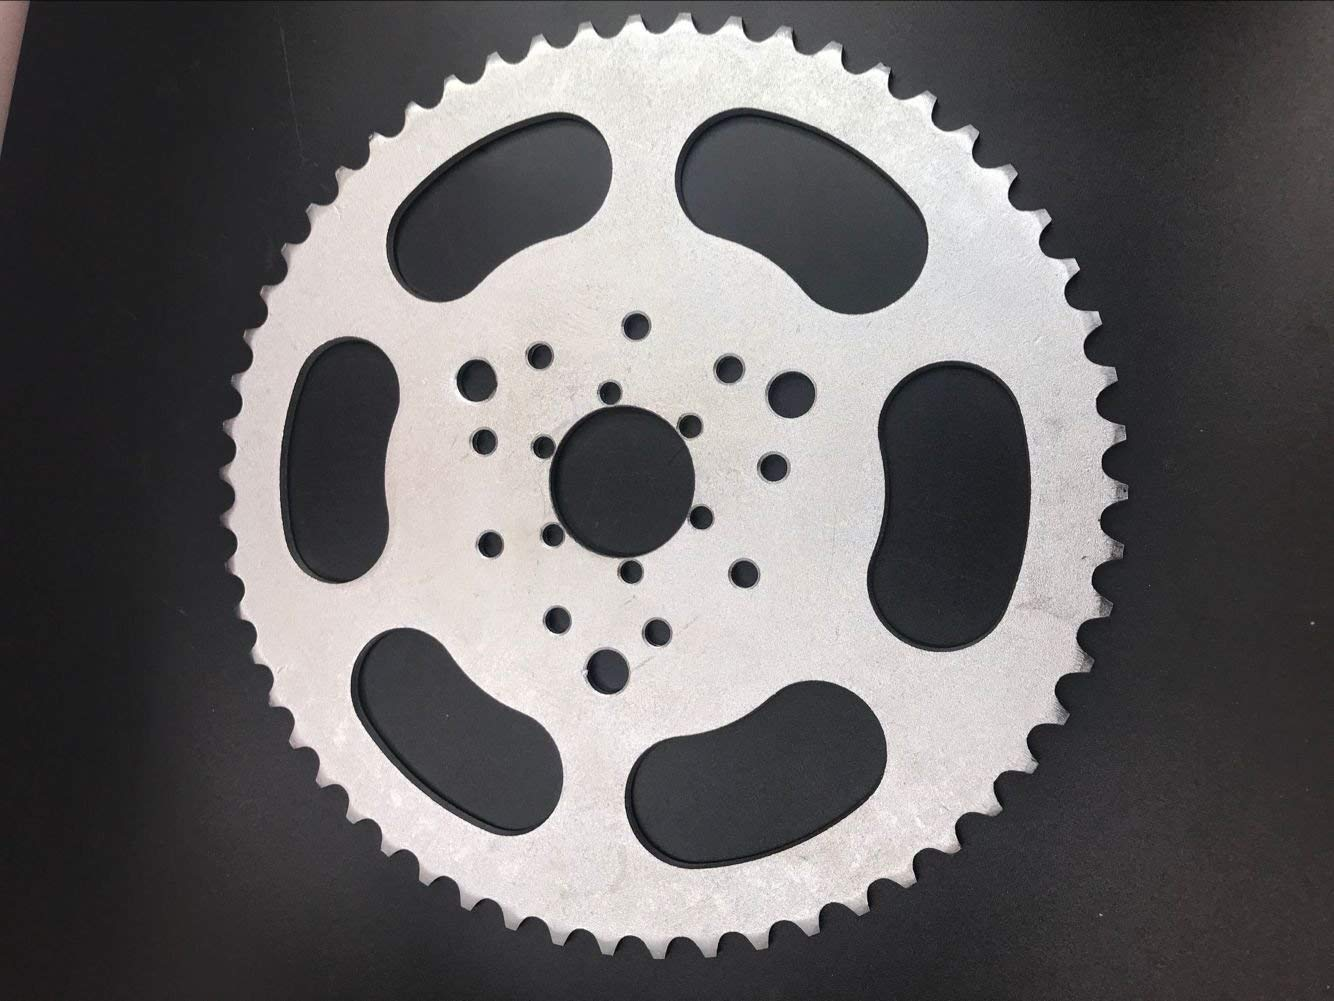 CDHpower Multifunctional 56 teeth sprocket -2 stroke gas engine motor gas motorized bicycle